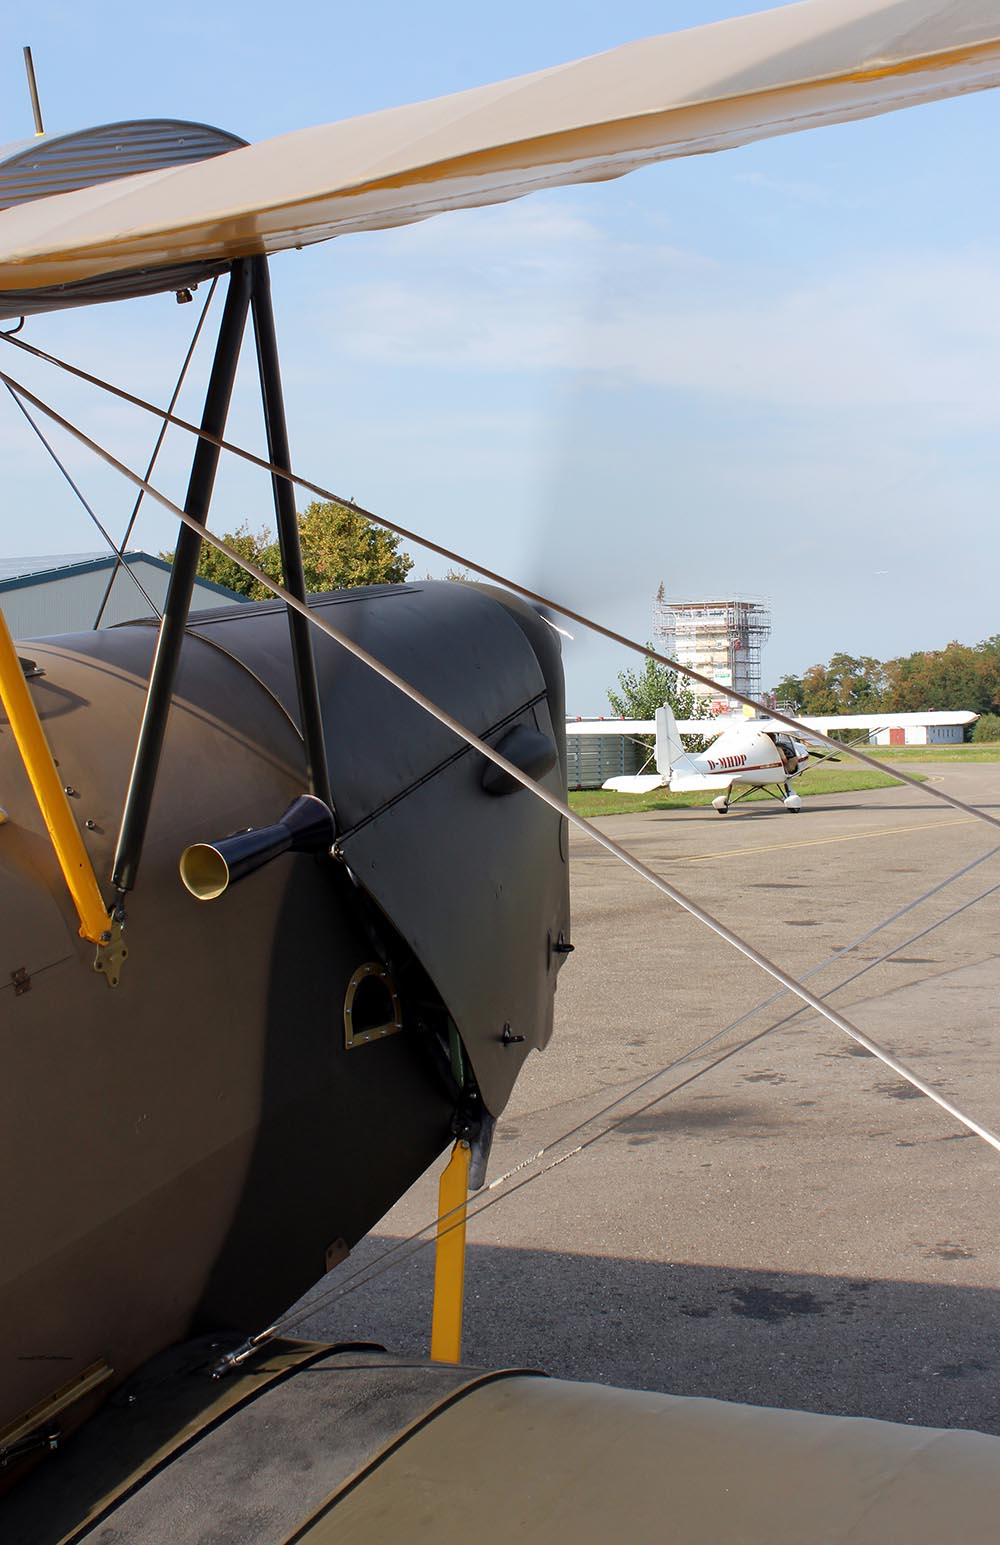 De_Havilland_TigerMoth_D-ECTM_2011-08-2525.jpg